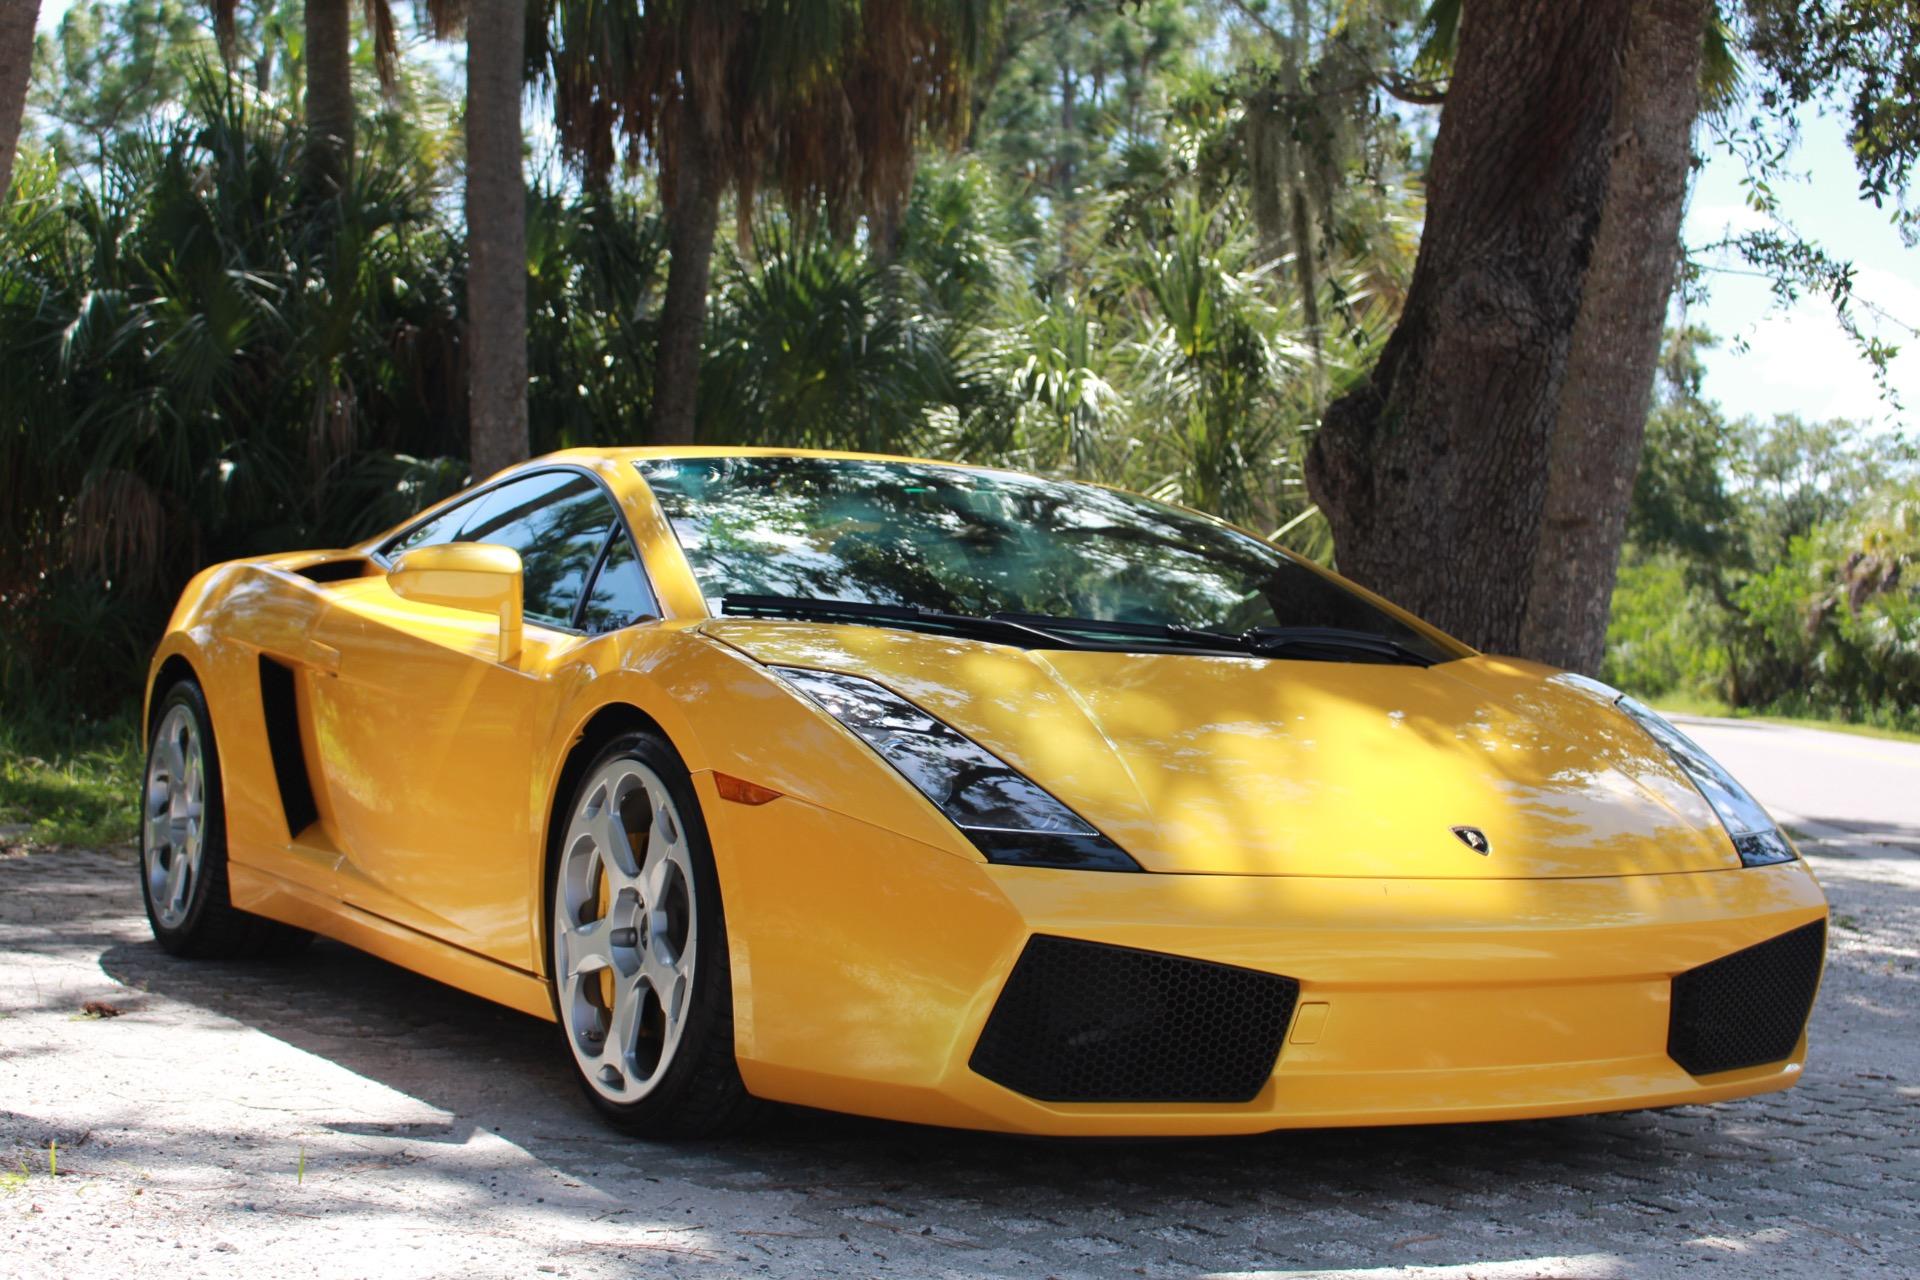 Used 2004 Lamborghini Gallardo Coupe for sale Sold at Track and Field Motors in Safety Harbor FL 34695 1